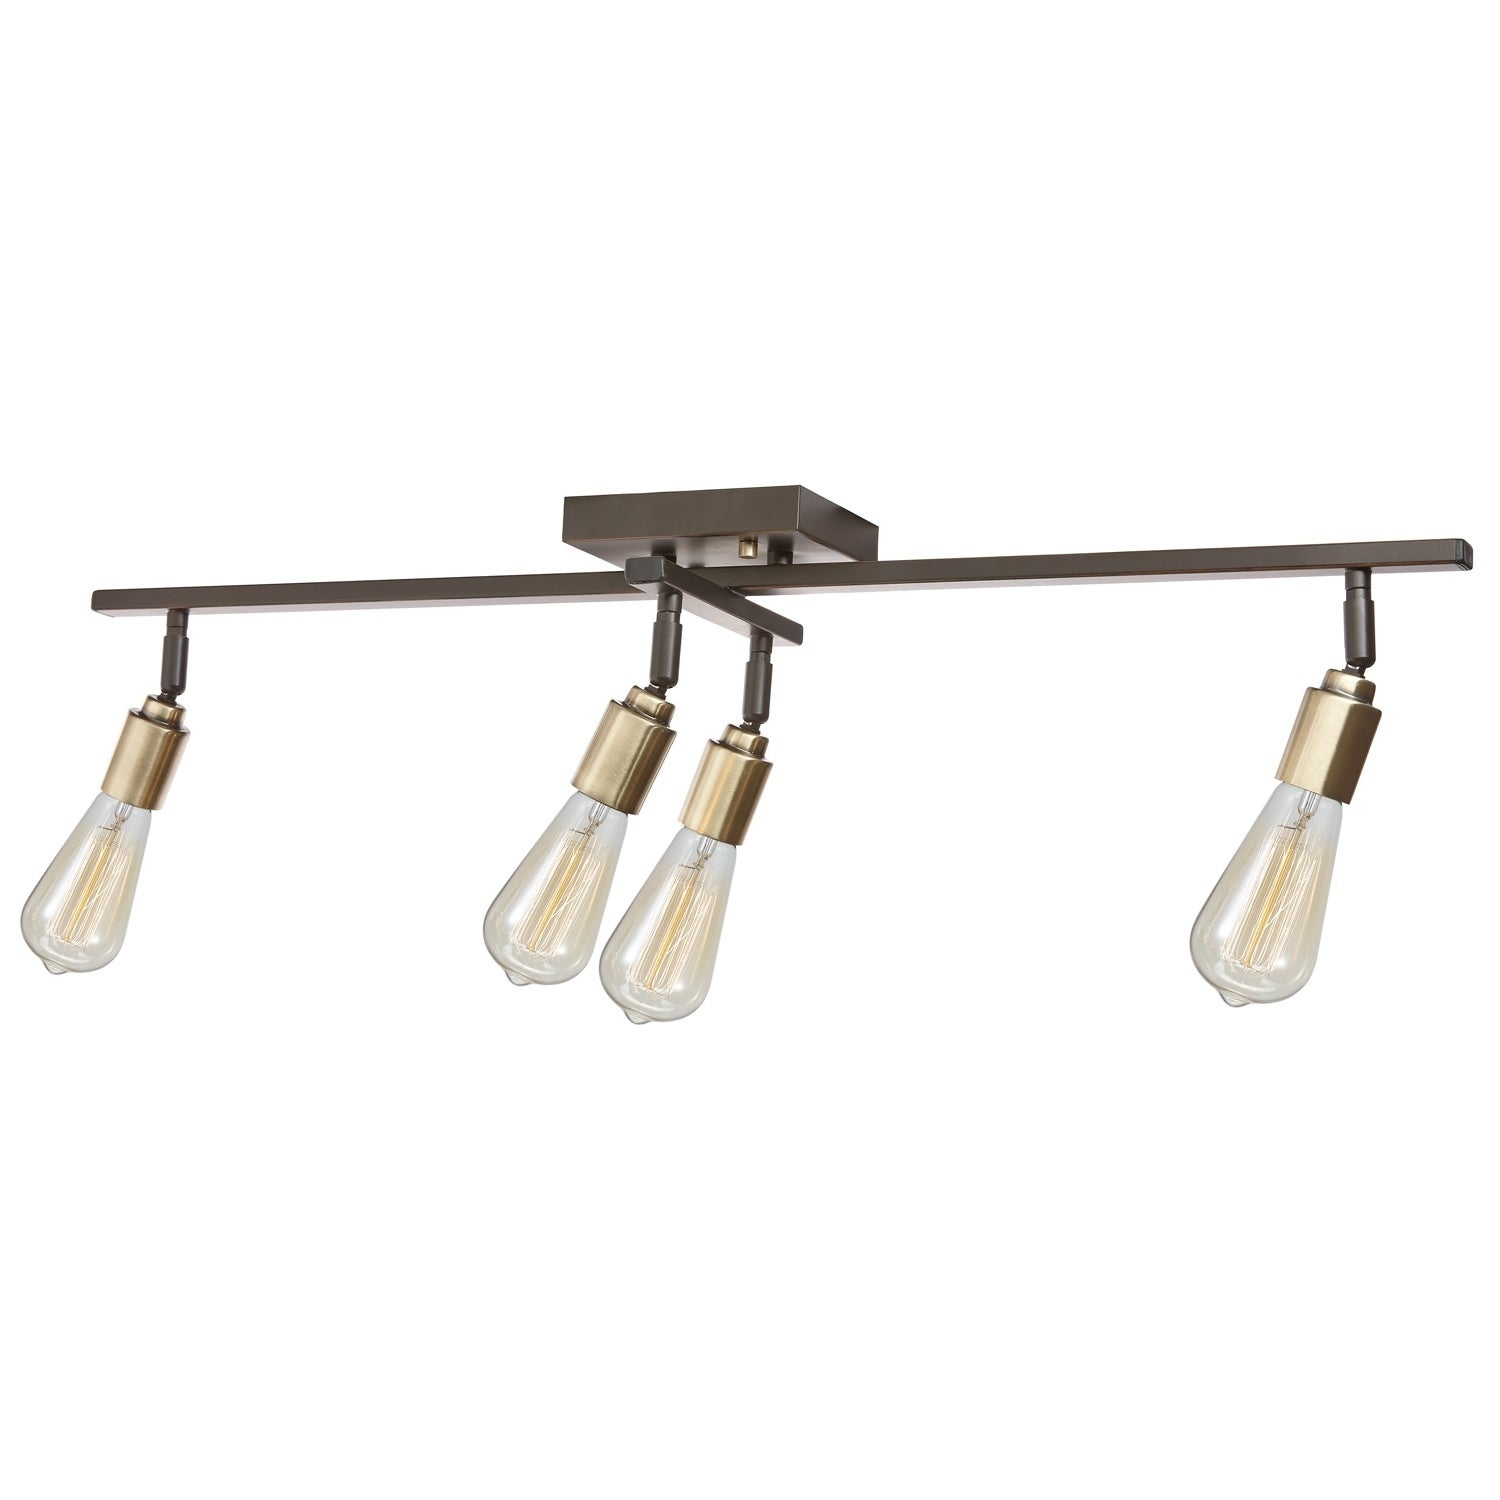 Shop Radcliffe 4-Light Track Light Oil Rubbed Bronze Bulbs Included - Free Shipping Today - Overstock.com - 21130074  sc 1 st  Overstock.com & Shop Radcliffe 4-Light Track Light Oil Rubbed Bronze Bulbs ...